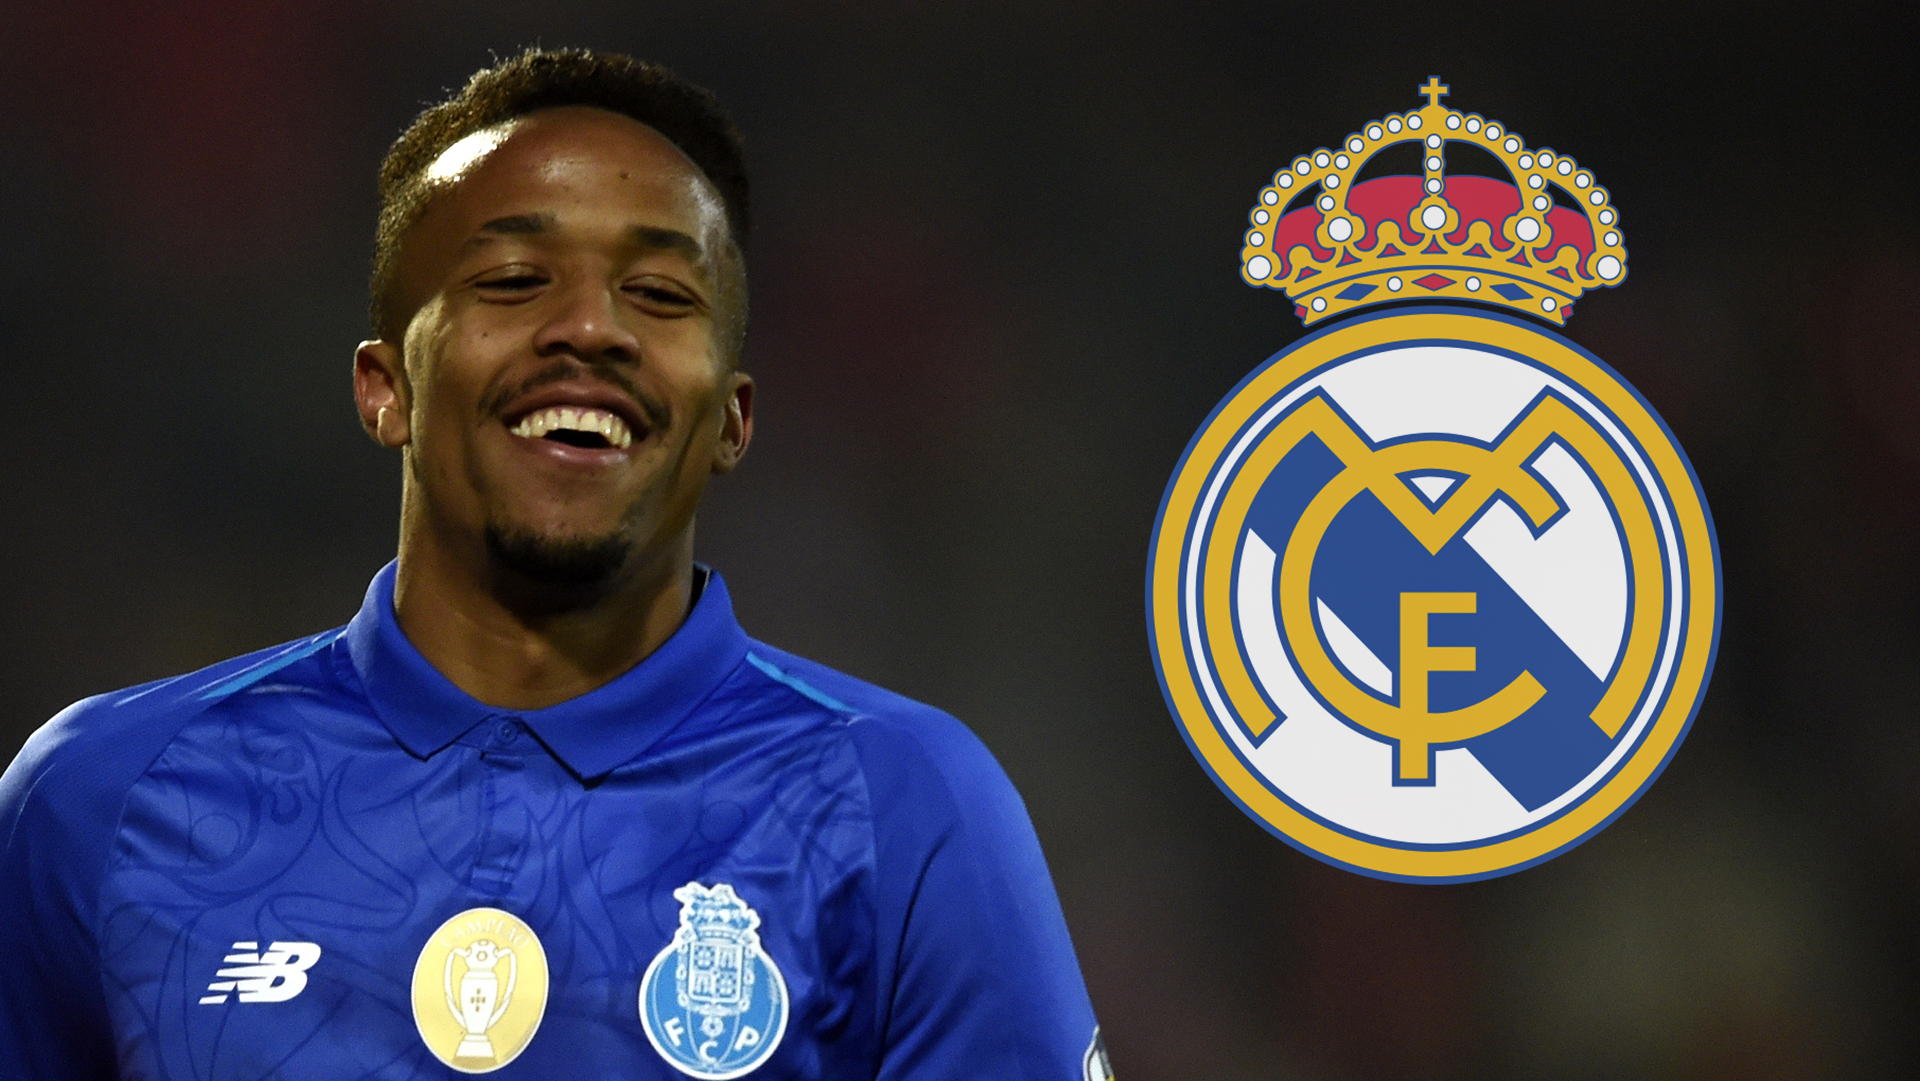 Eder Militao signs for Real Madrid from Porto